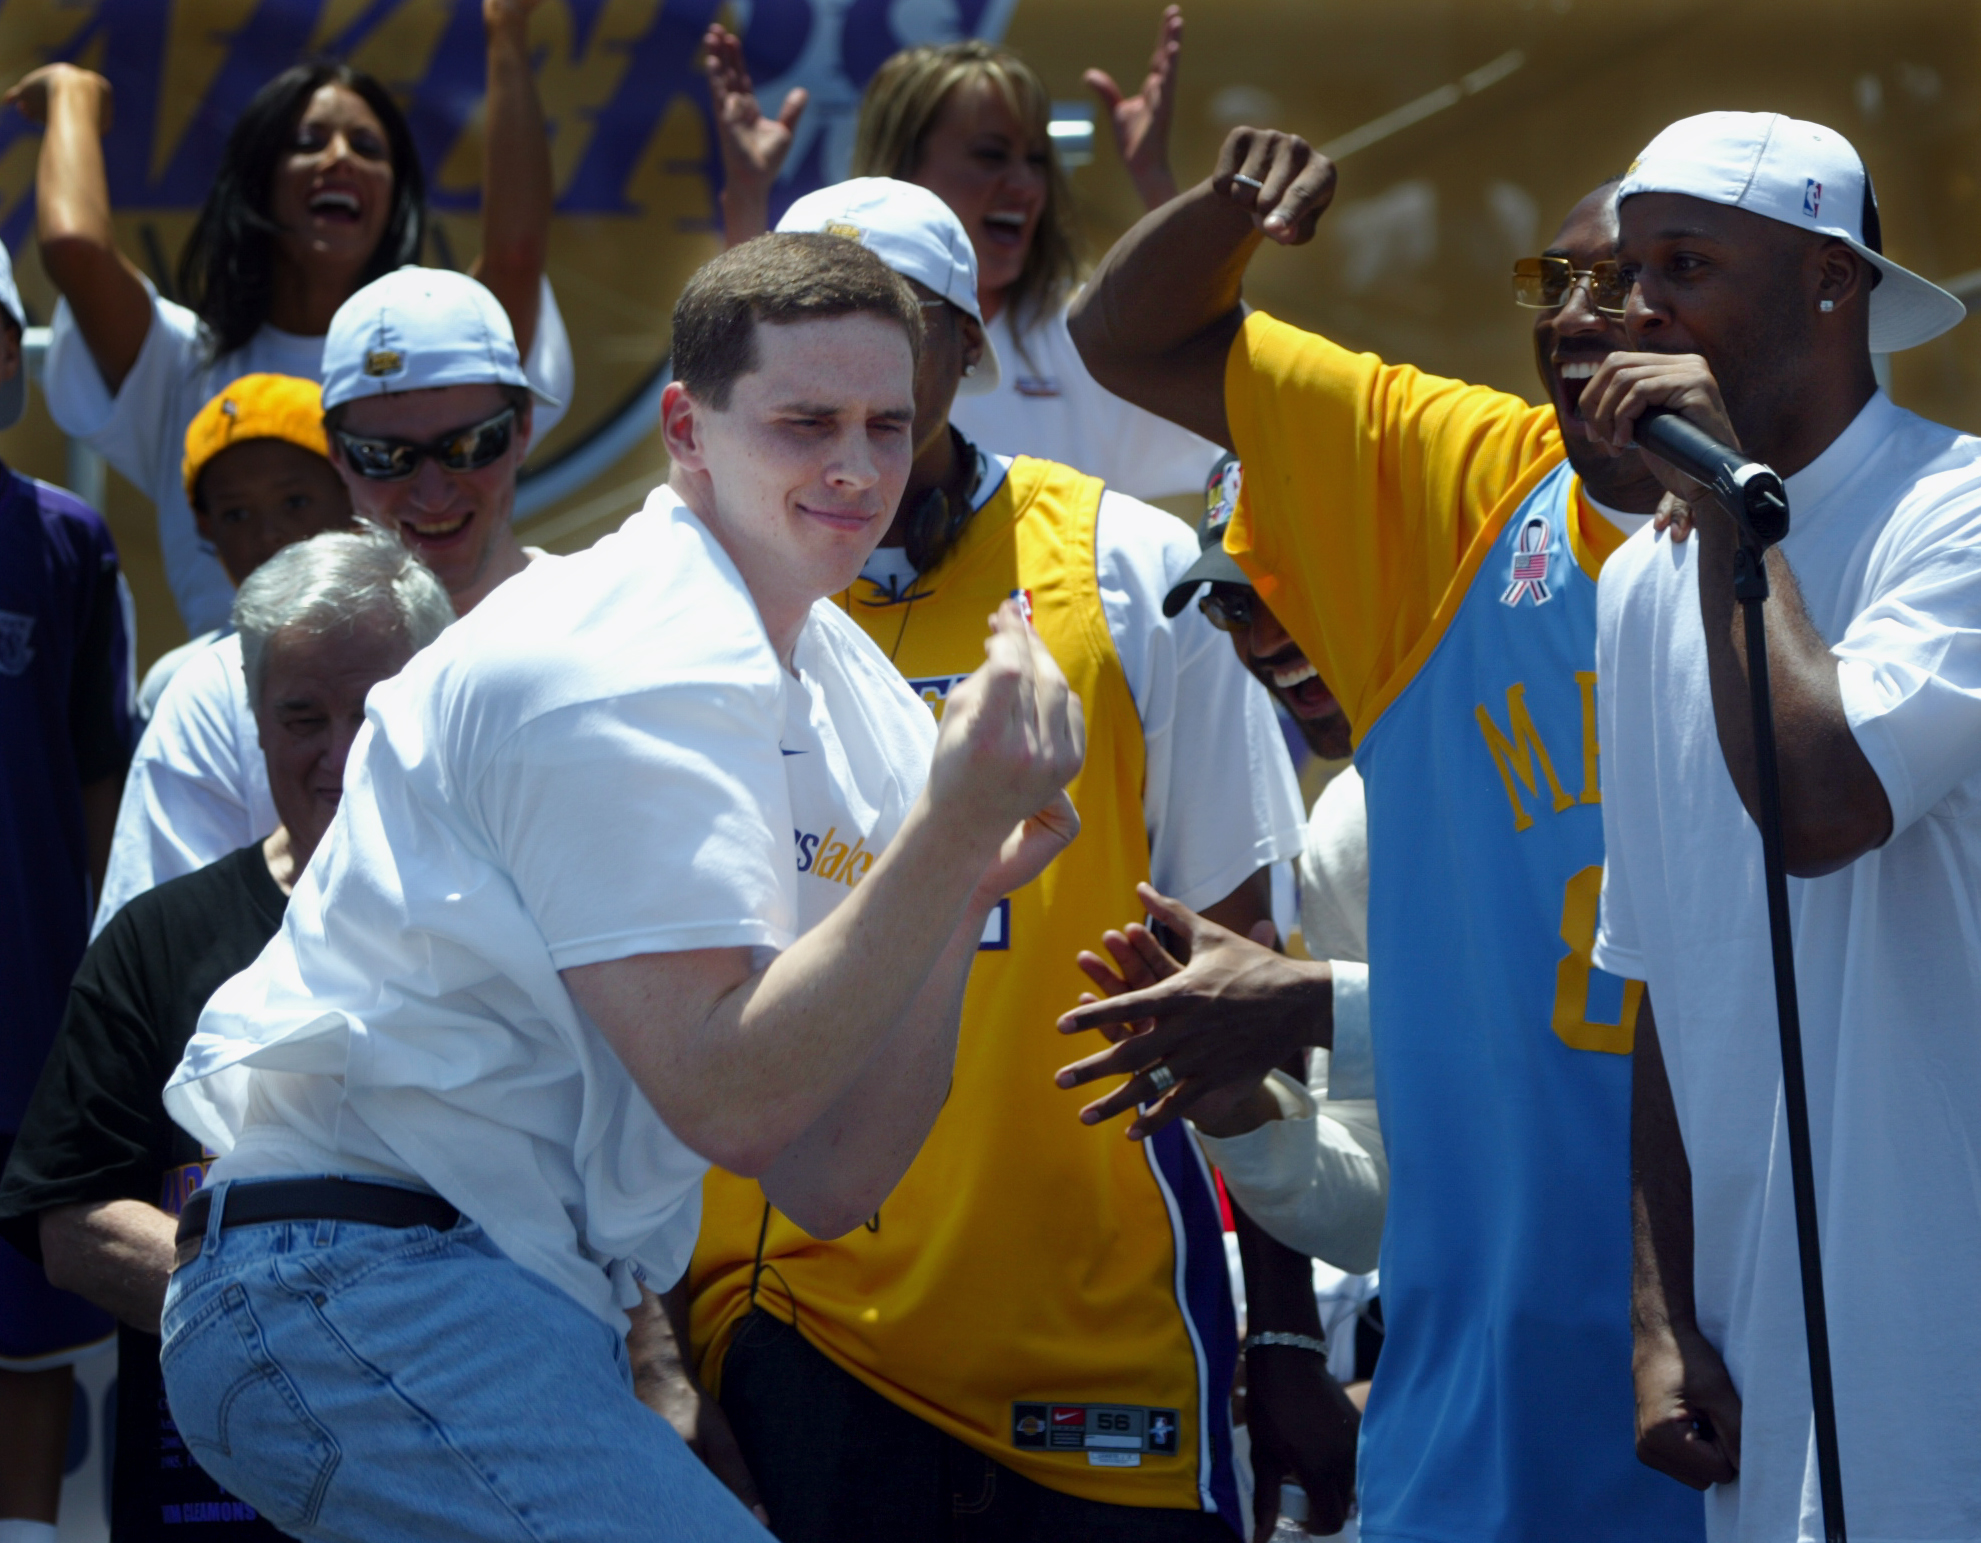 The Los Angeles Lakers celebrated their 3rd NBA Championship with a parade and celebration in downto